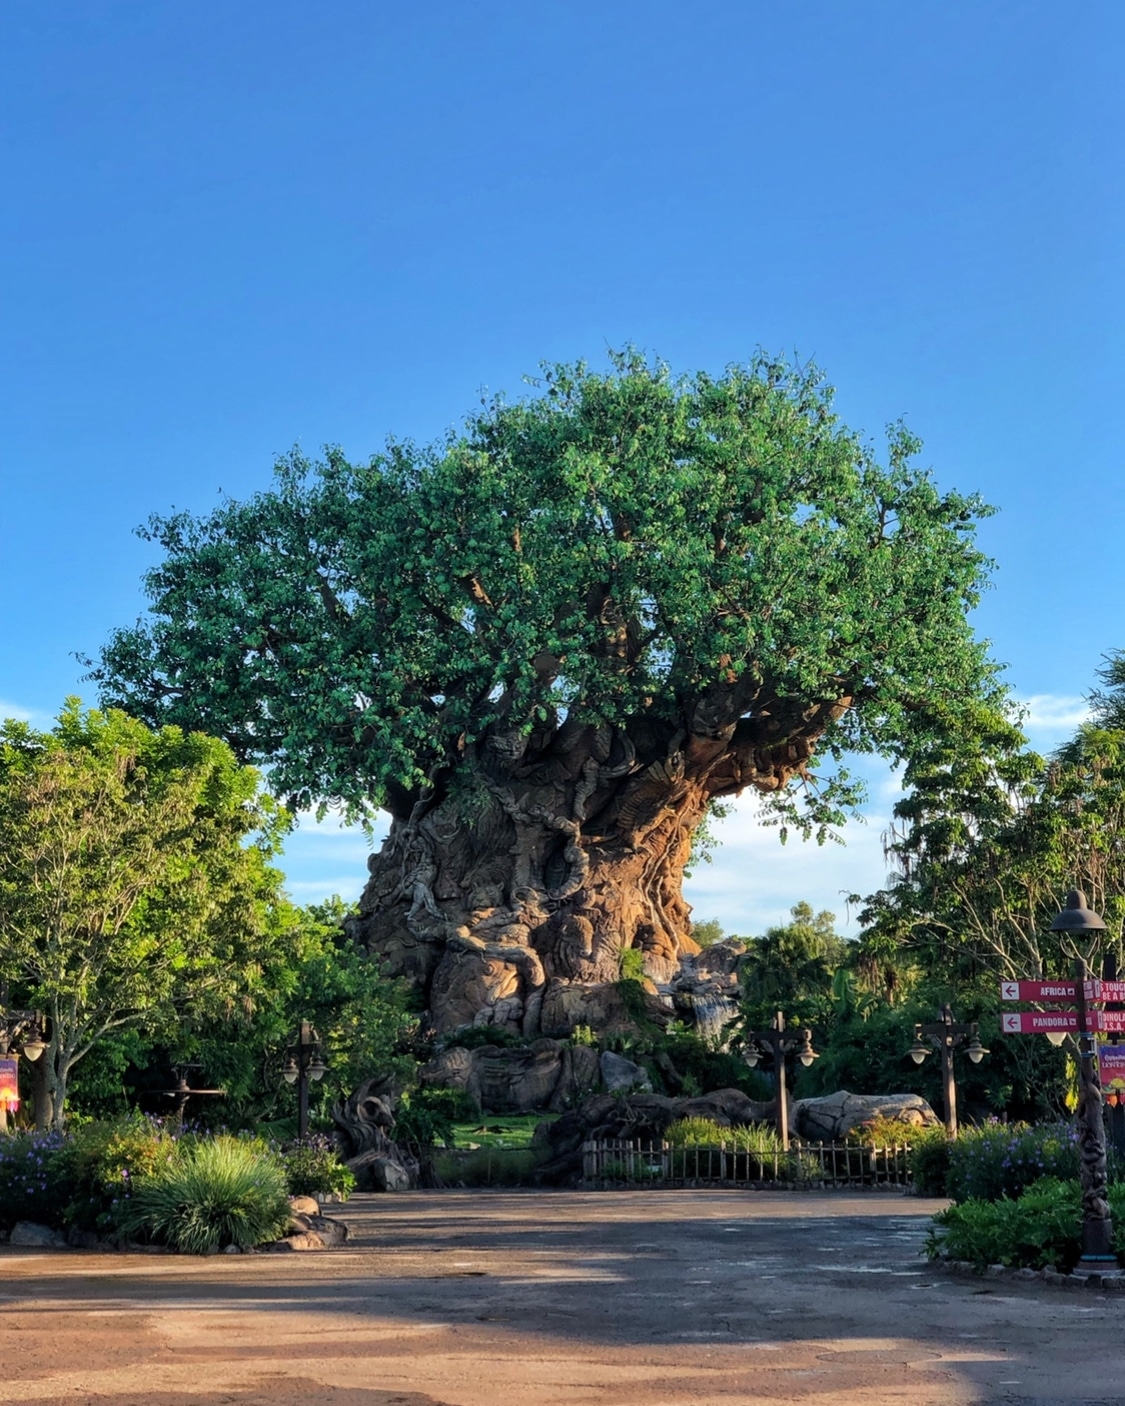 Tree of Life in Disney's Animal Kingdom at Walt Disney World